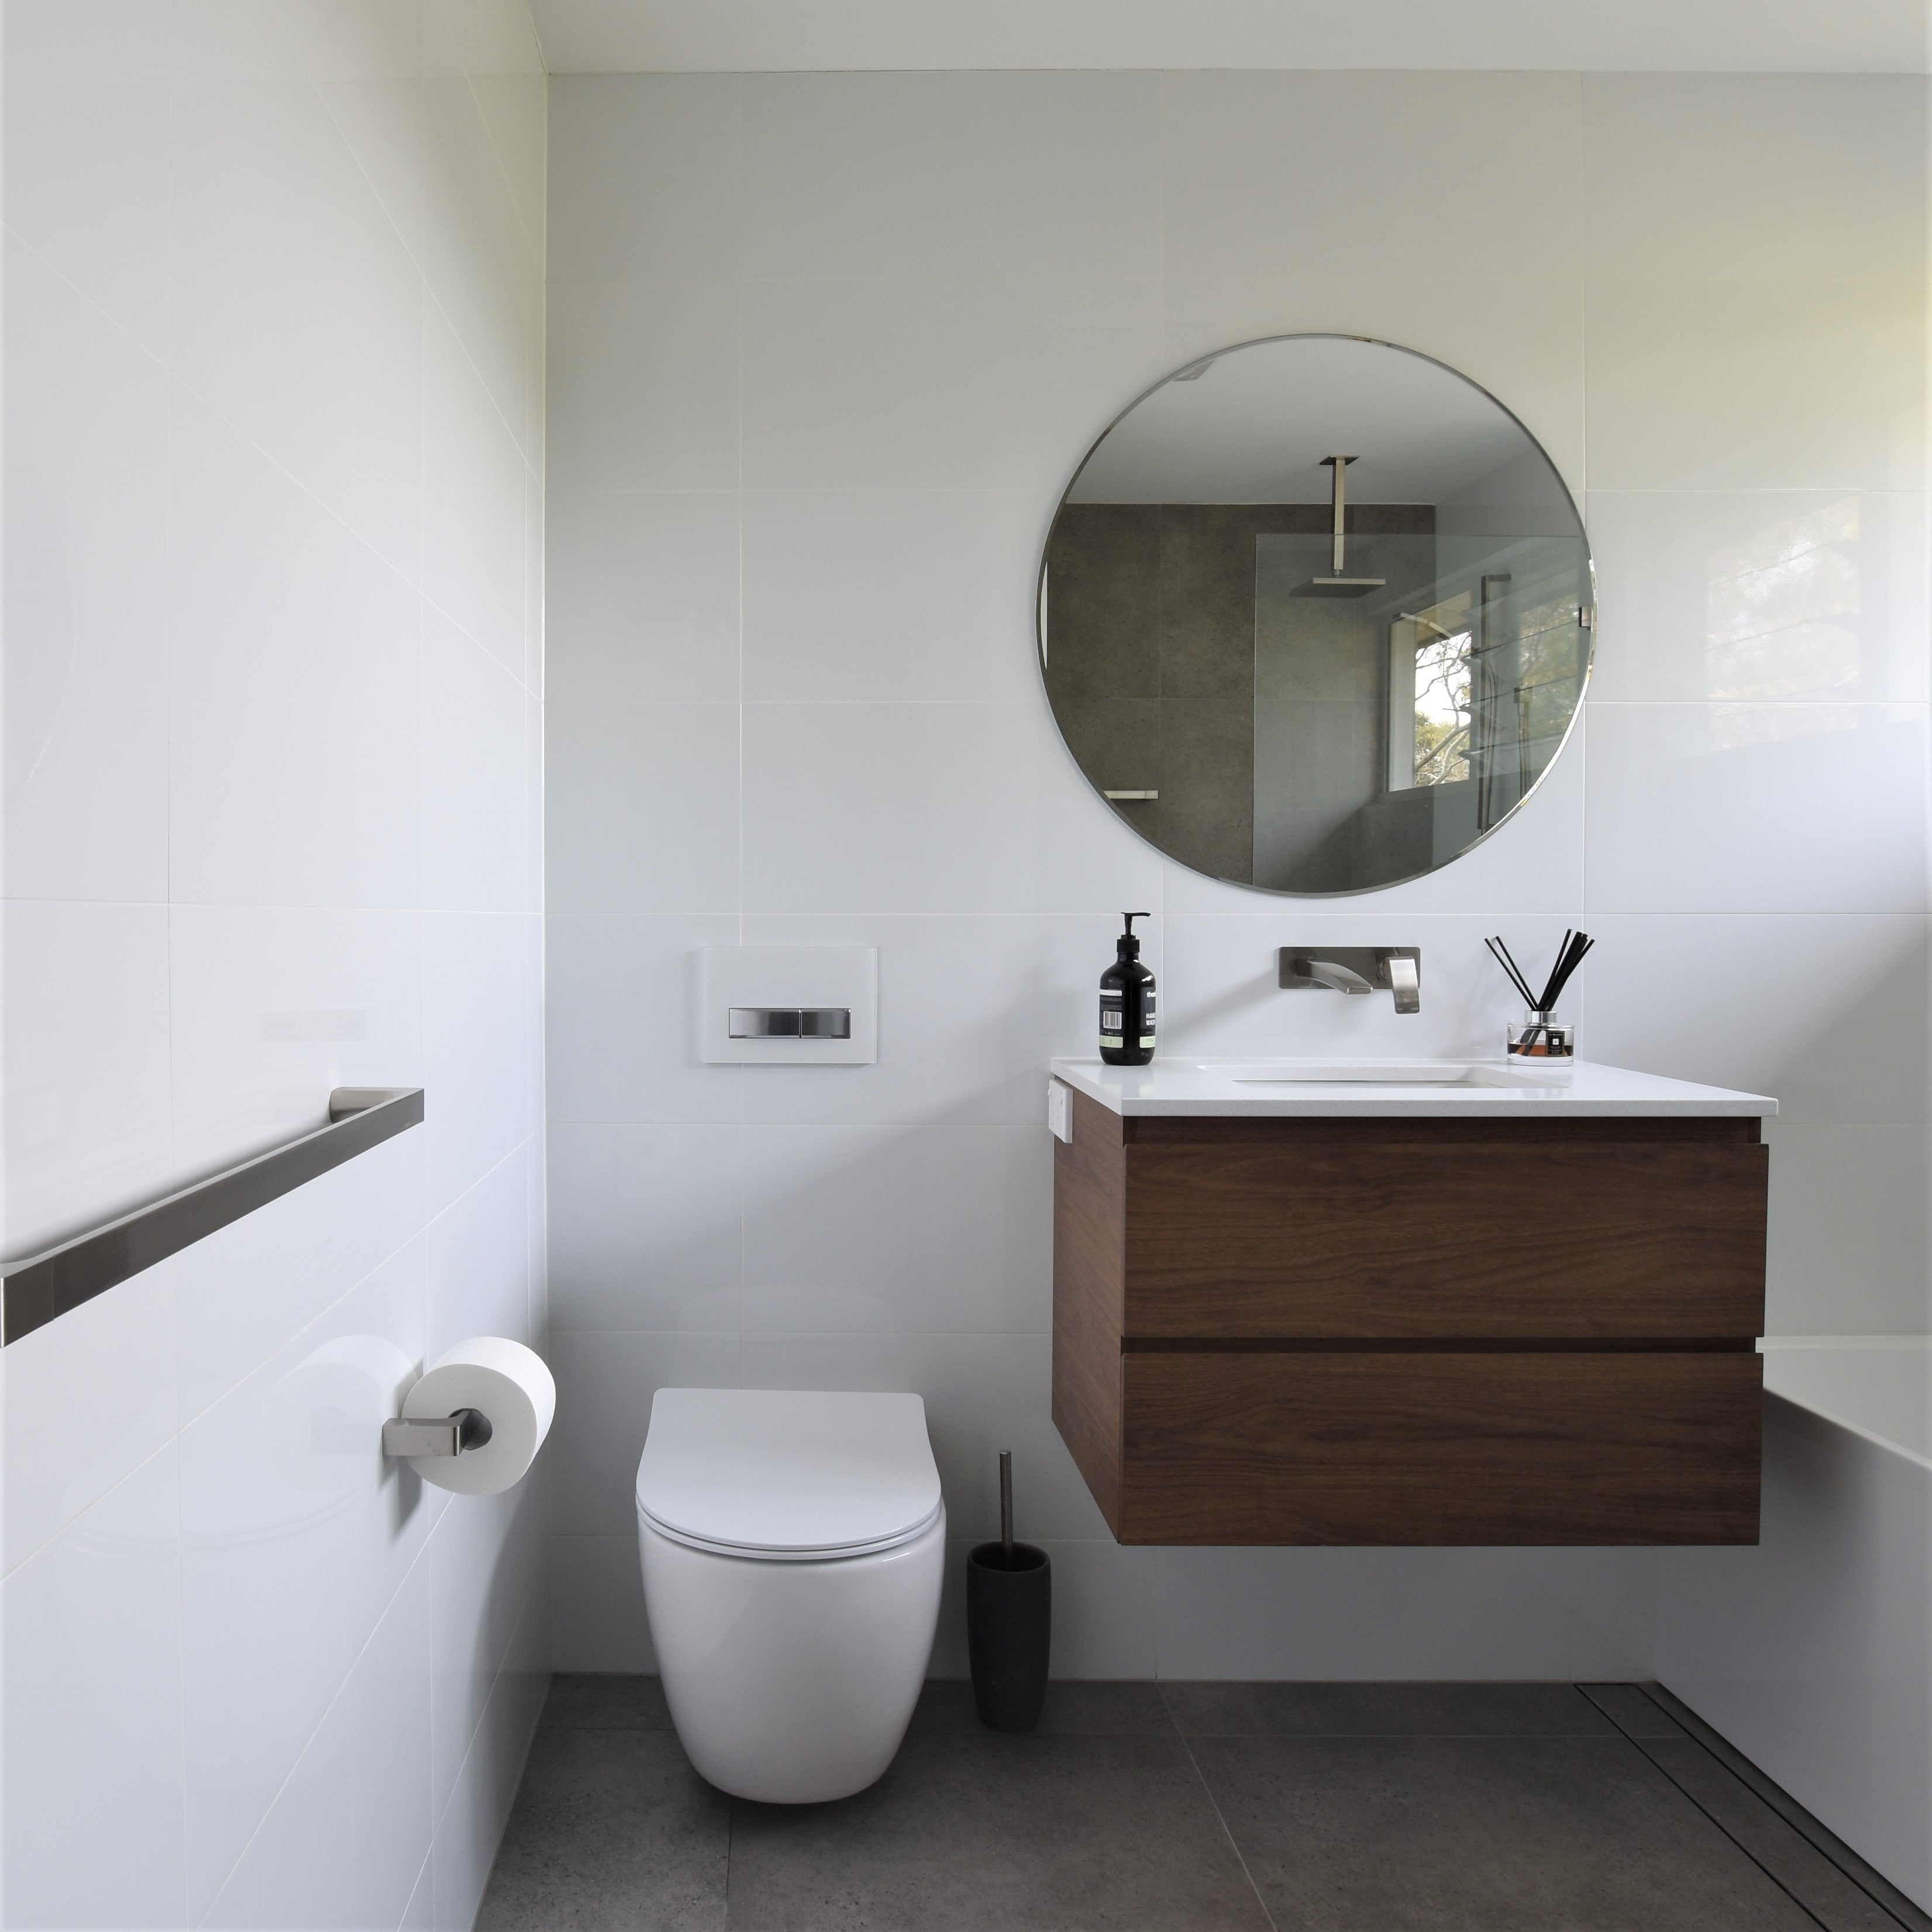 This bathroom features a toilet with a cistern behind the wall, making it better for cleaning